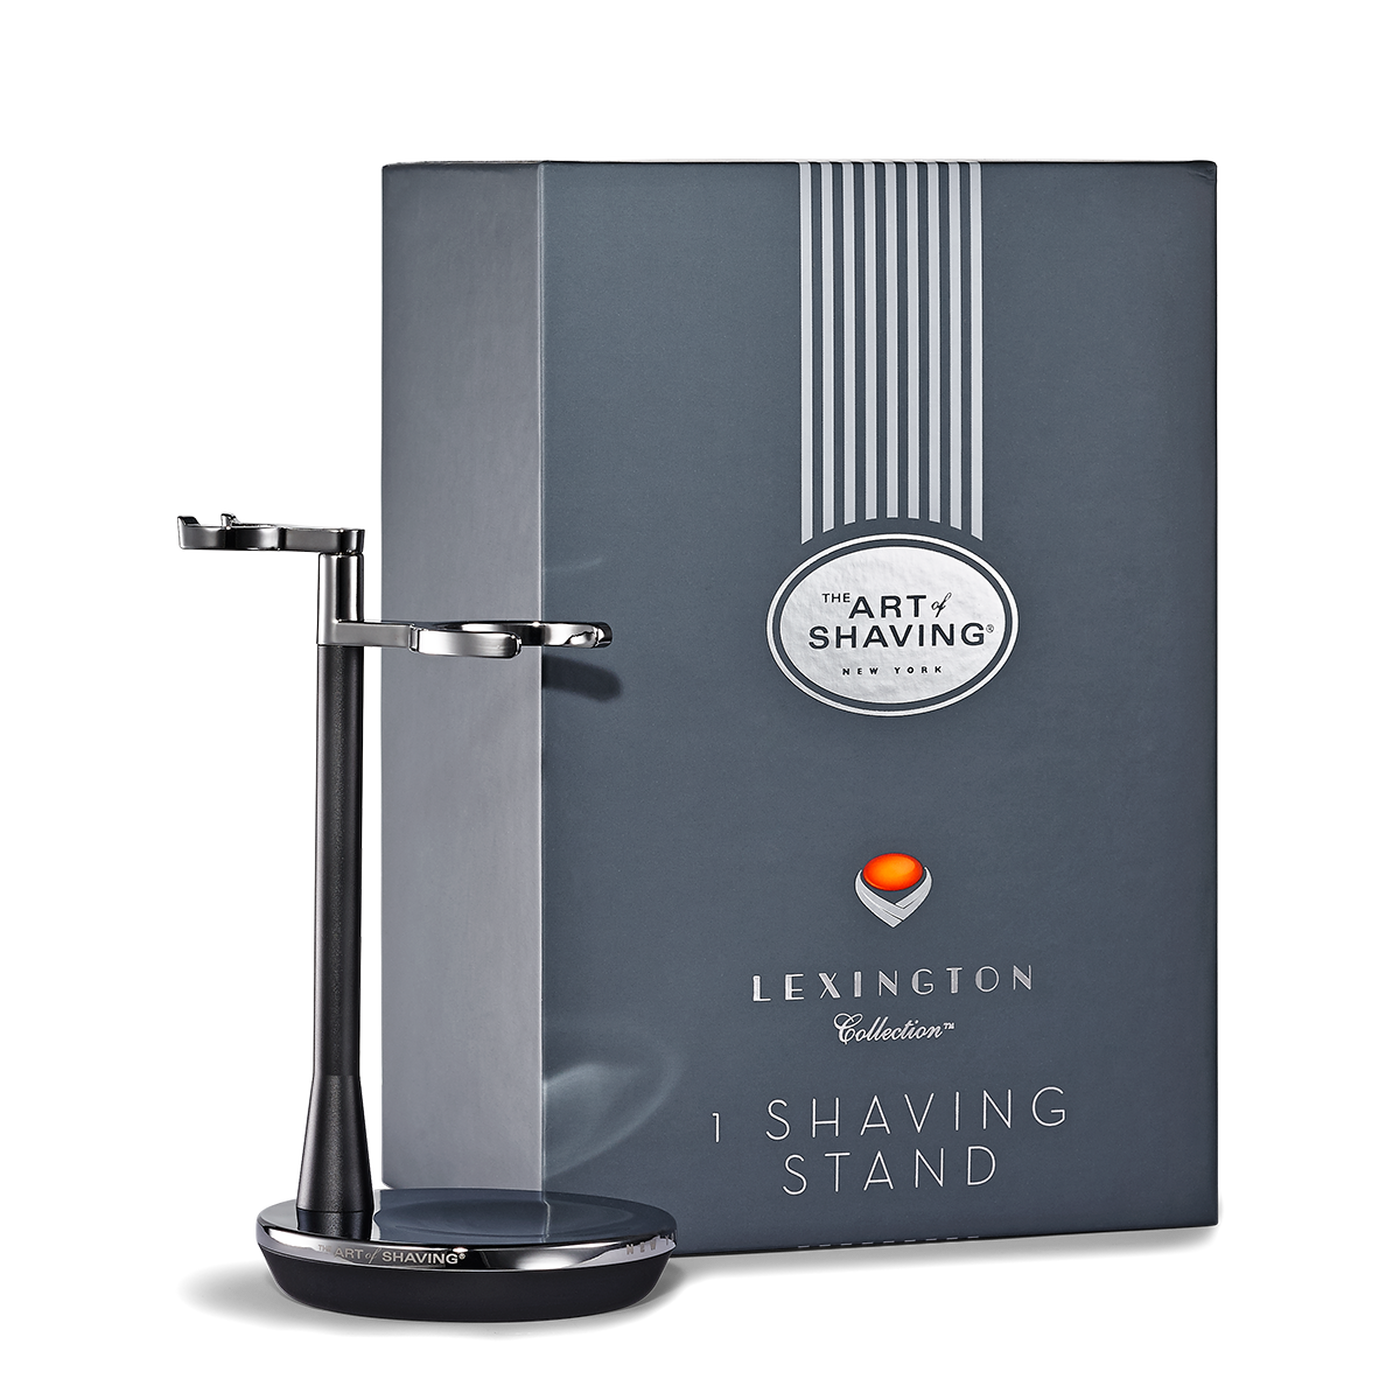 The Art Of Shaving: Lexington Shaving Stand